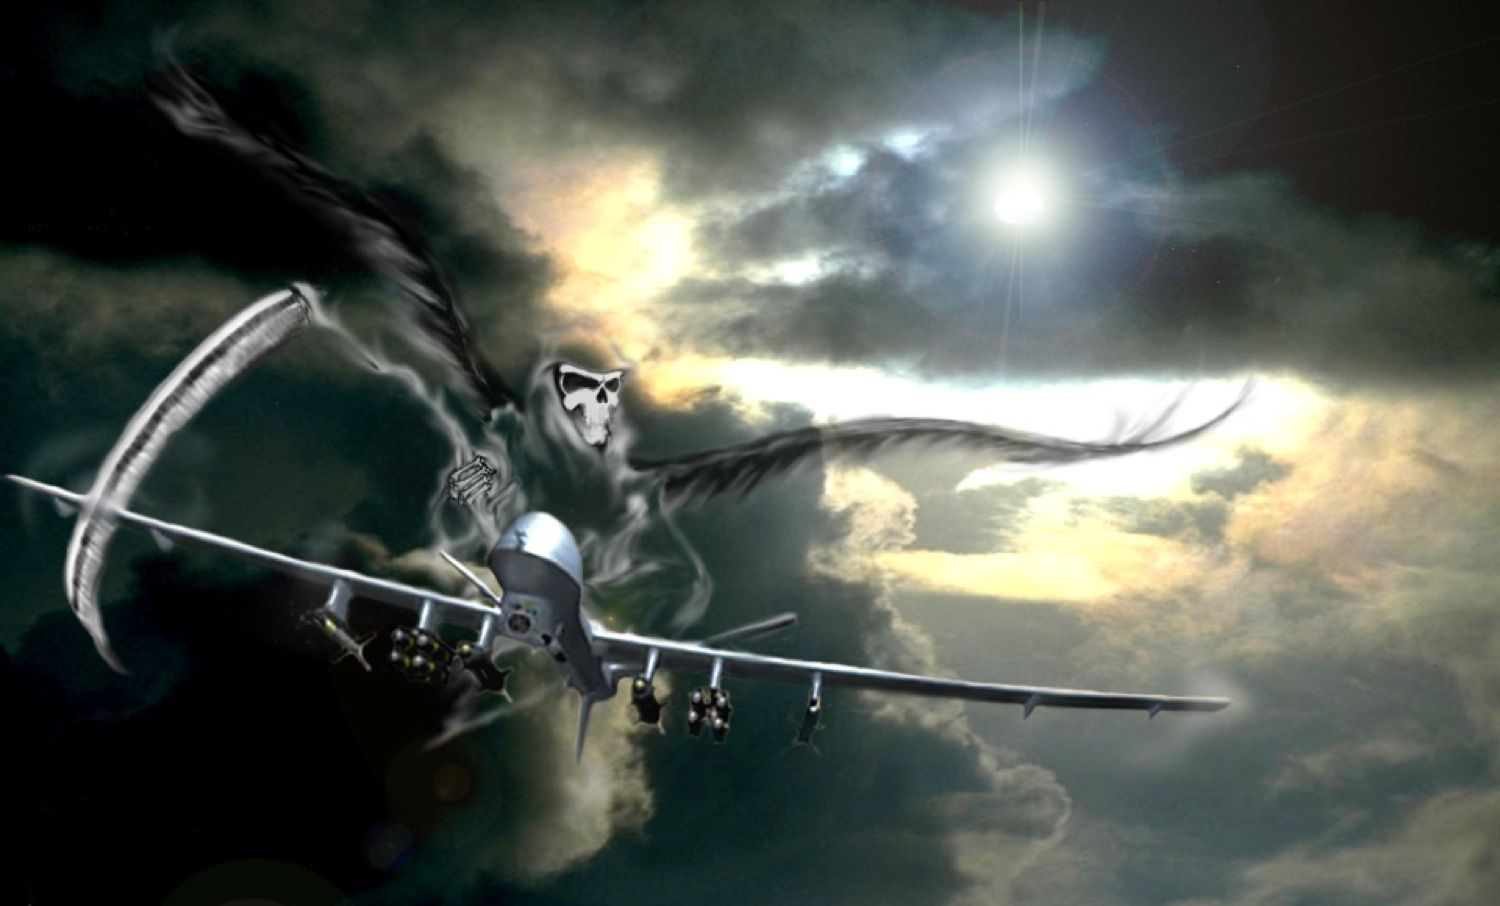 obama predator drones with Drone on 364653 moreover Automating Totalitarianism In The Empire further Le Debat Sur Les Frappes De Drones Americains Relance in addition Imran Khan Moves Supreme Court Against Drone Attacks likewise Saudi Arabia Buying South African Armed Drone 258887.